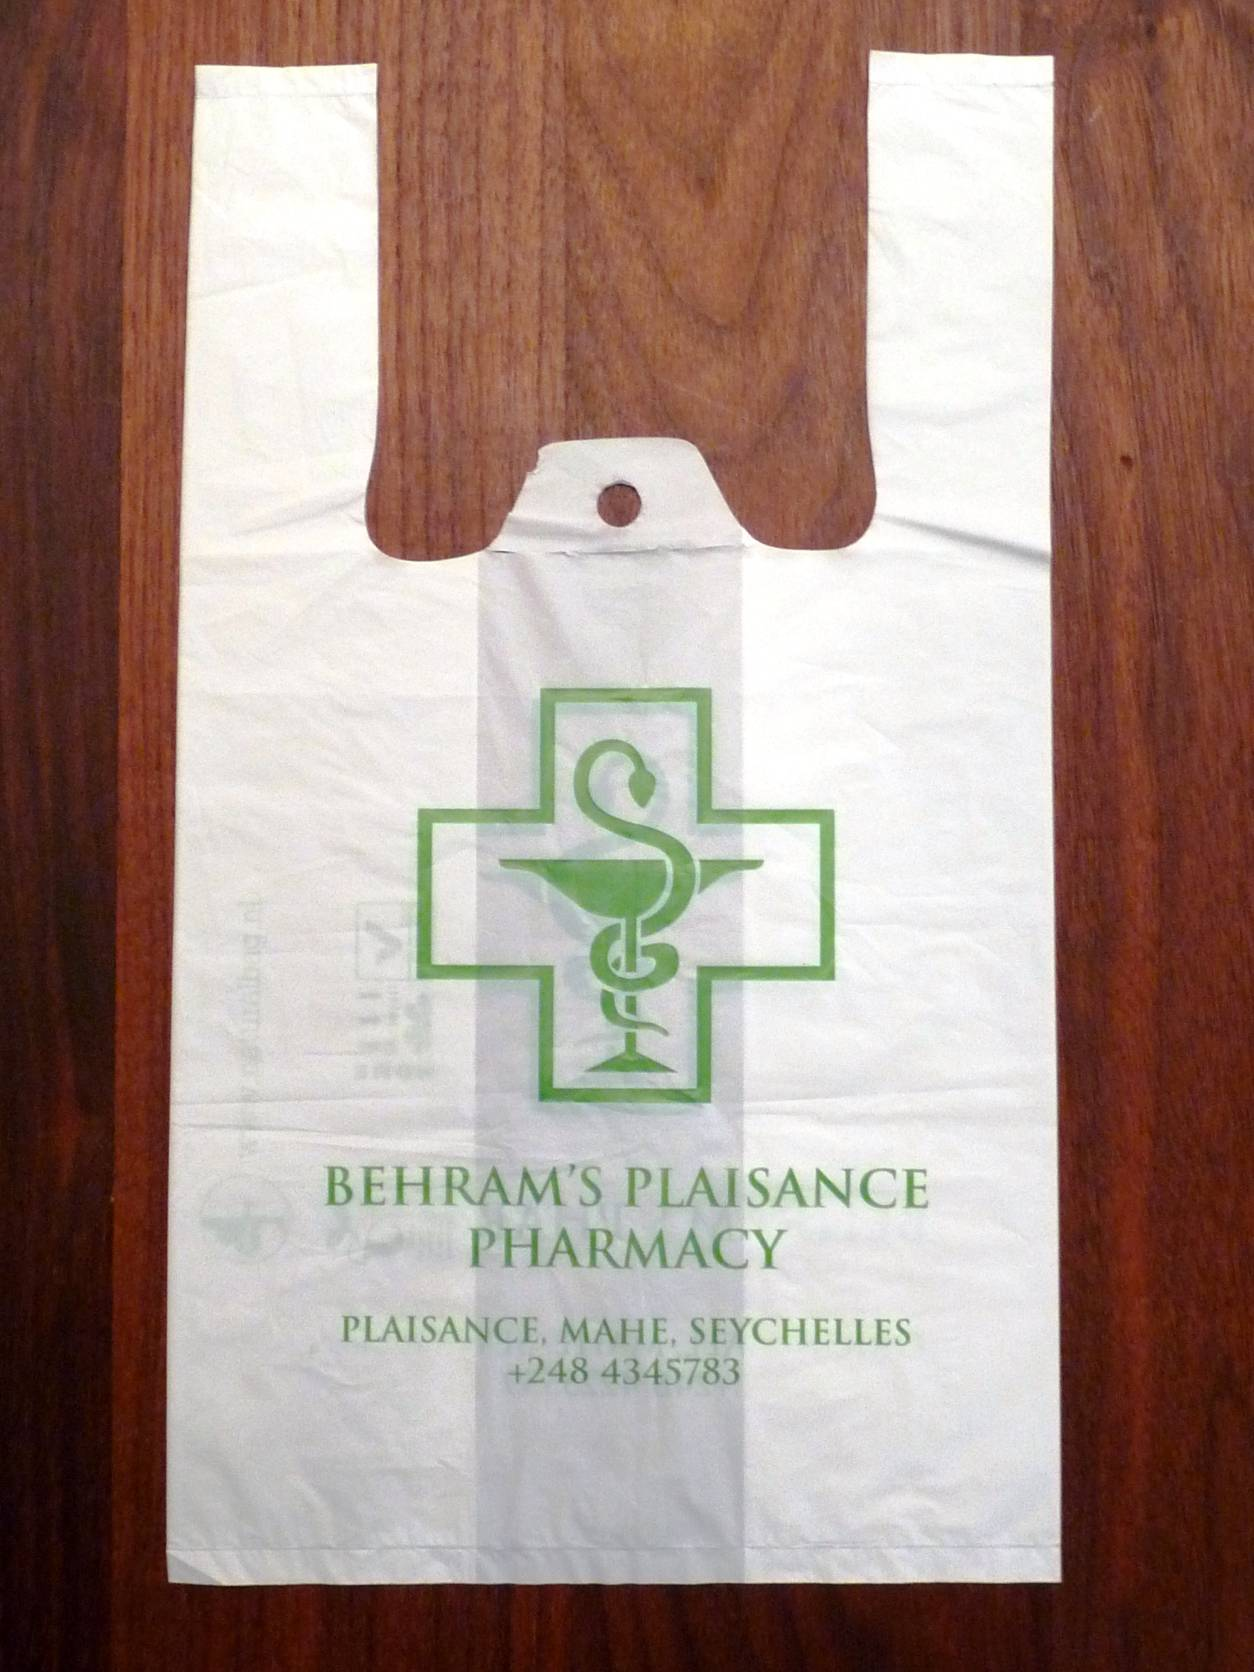 Behrams Plaisance Pharmacy